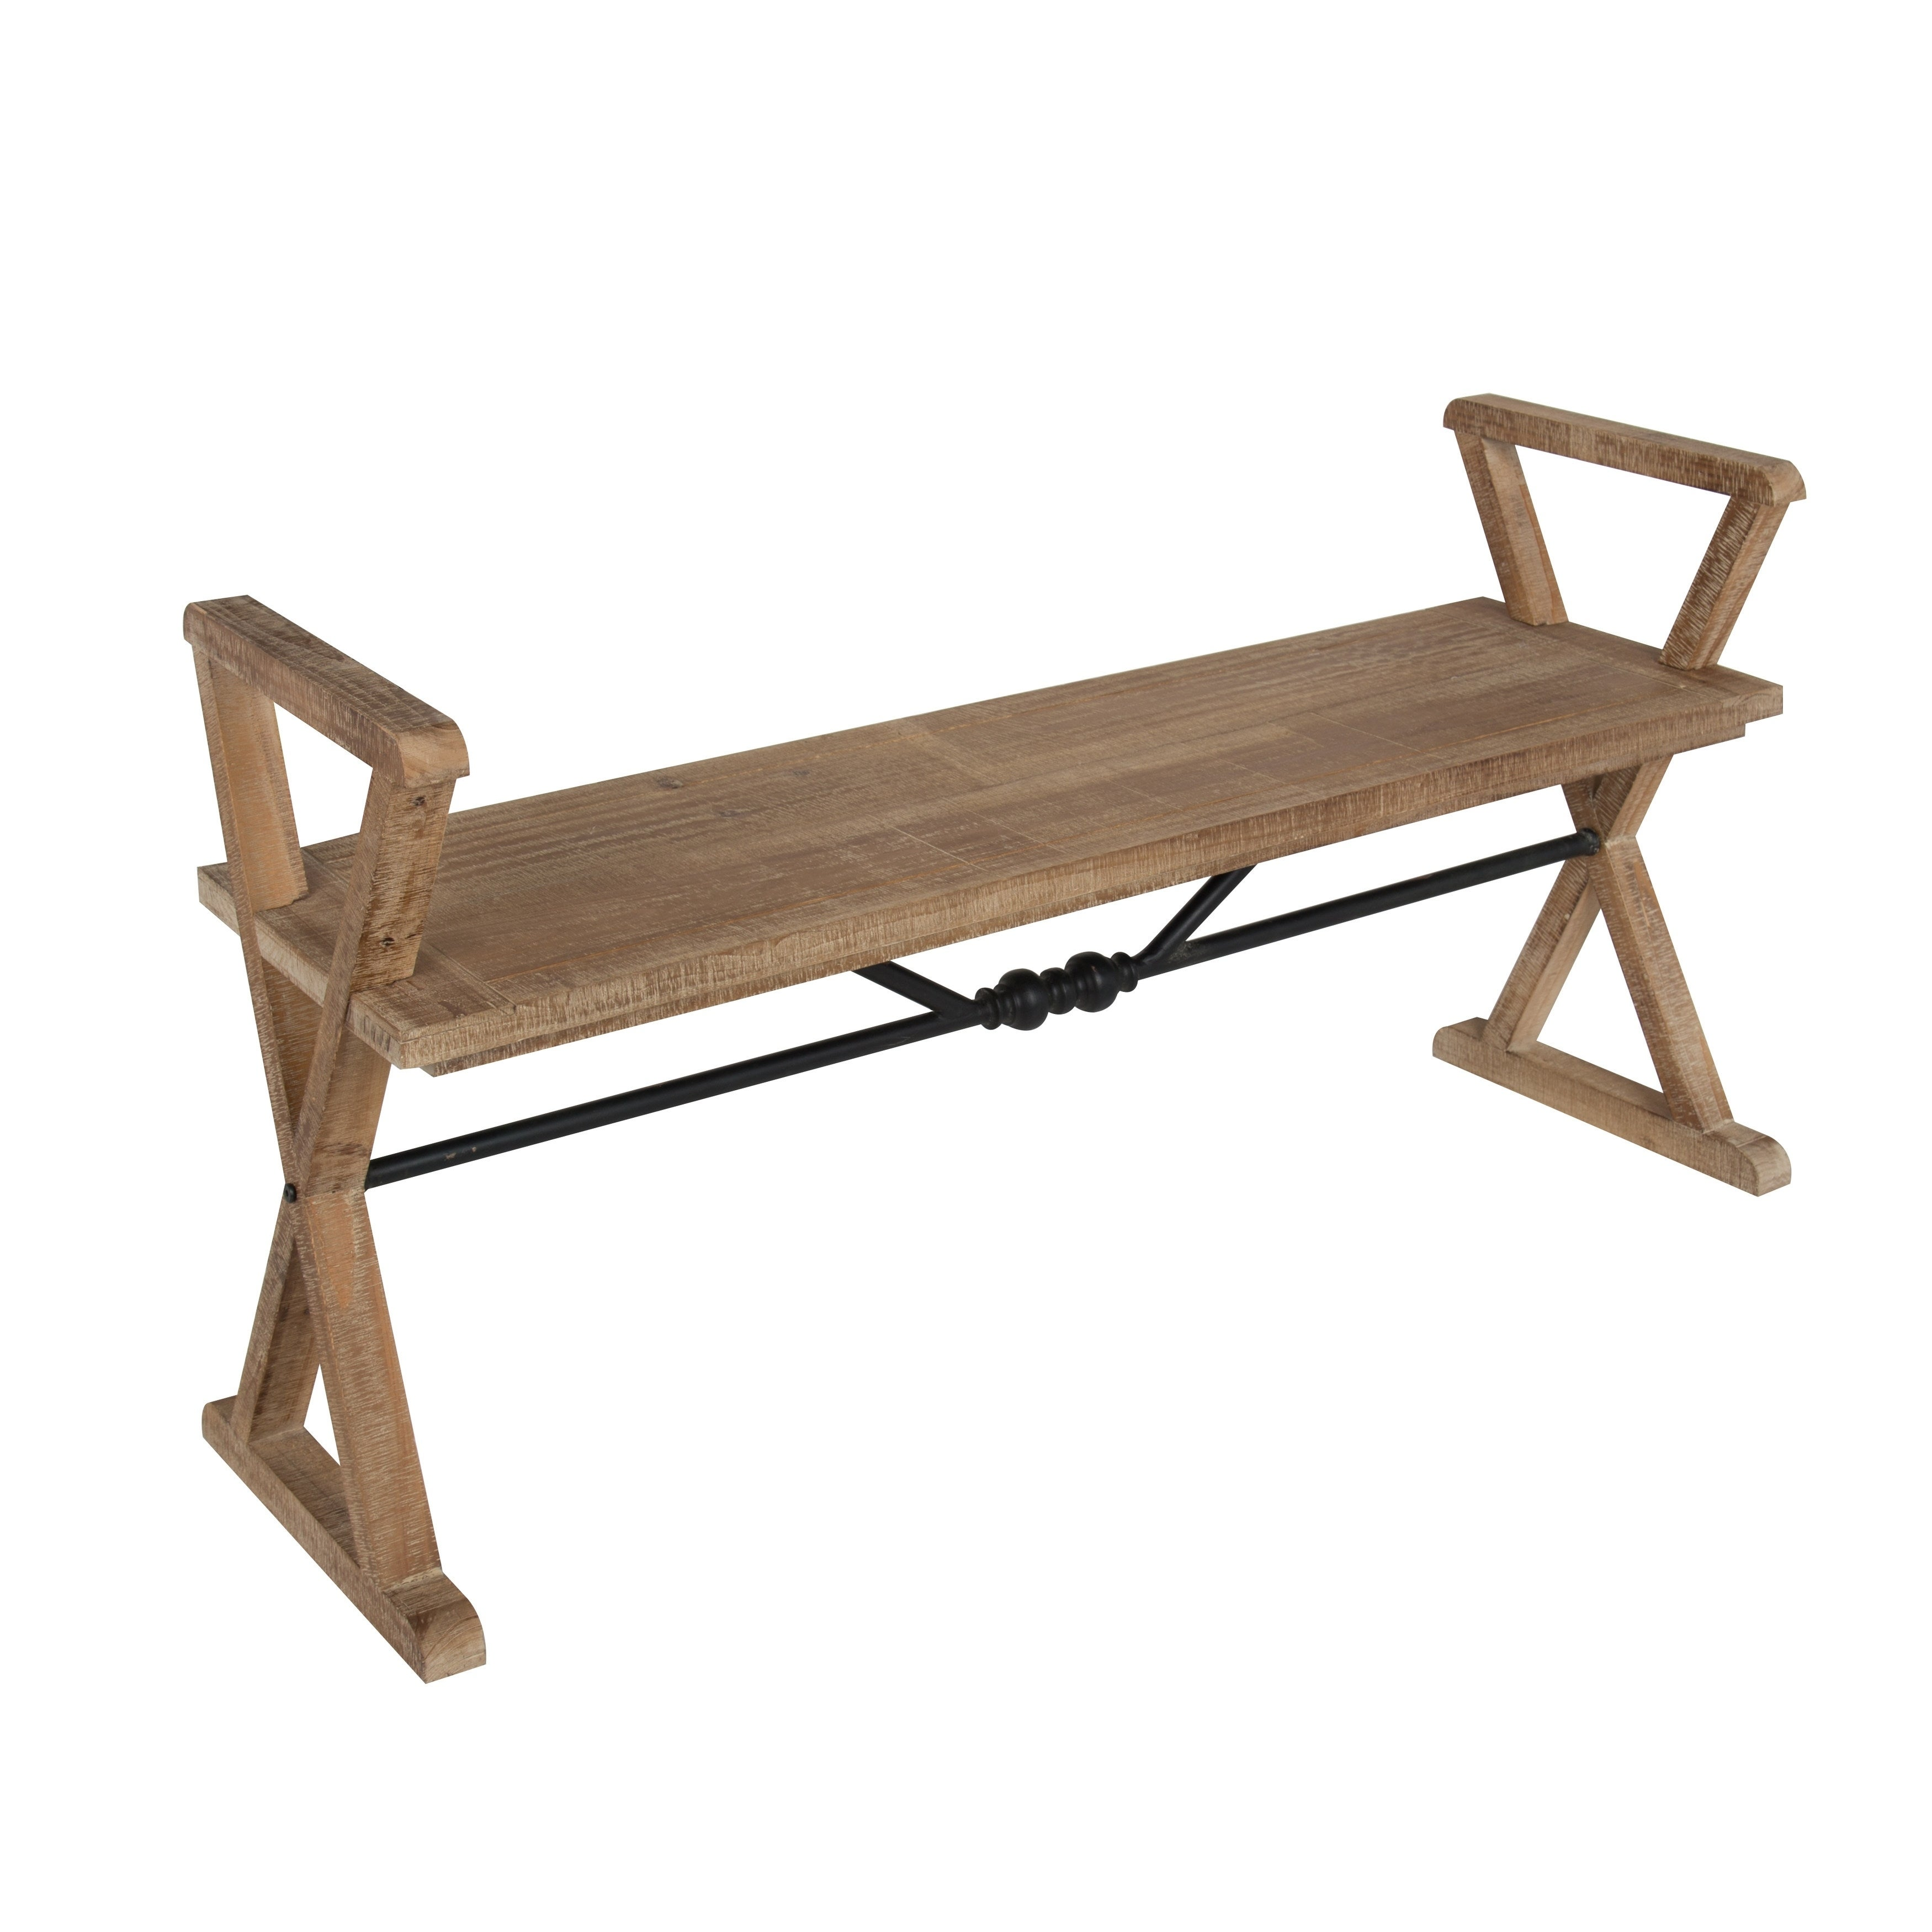 wood flair metal info wonderful for white black cast and rod backyard photos small educard garden patio bench ideas outdoor most landscaping furniture seat used wrought old iron outstanding